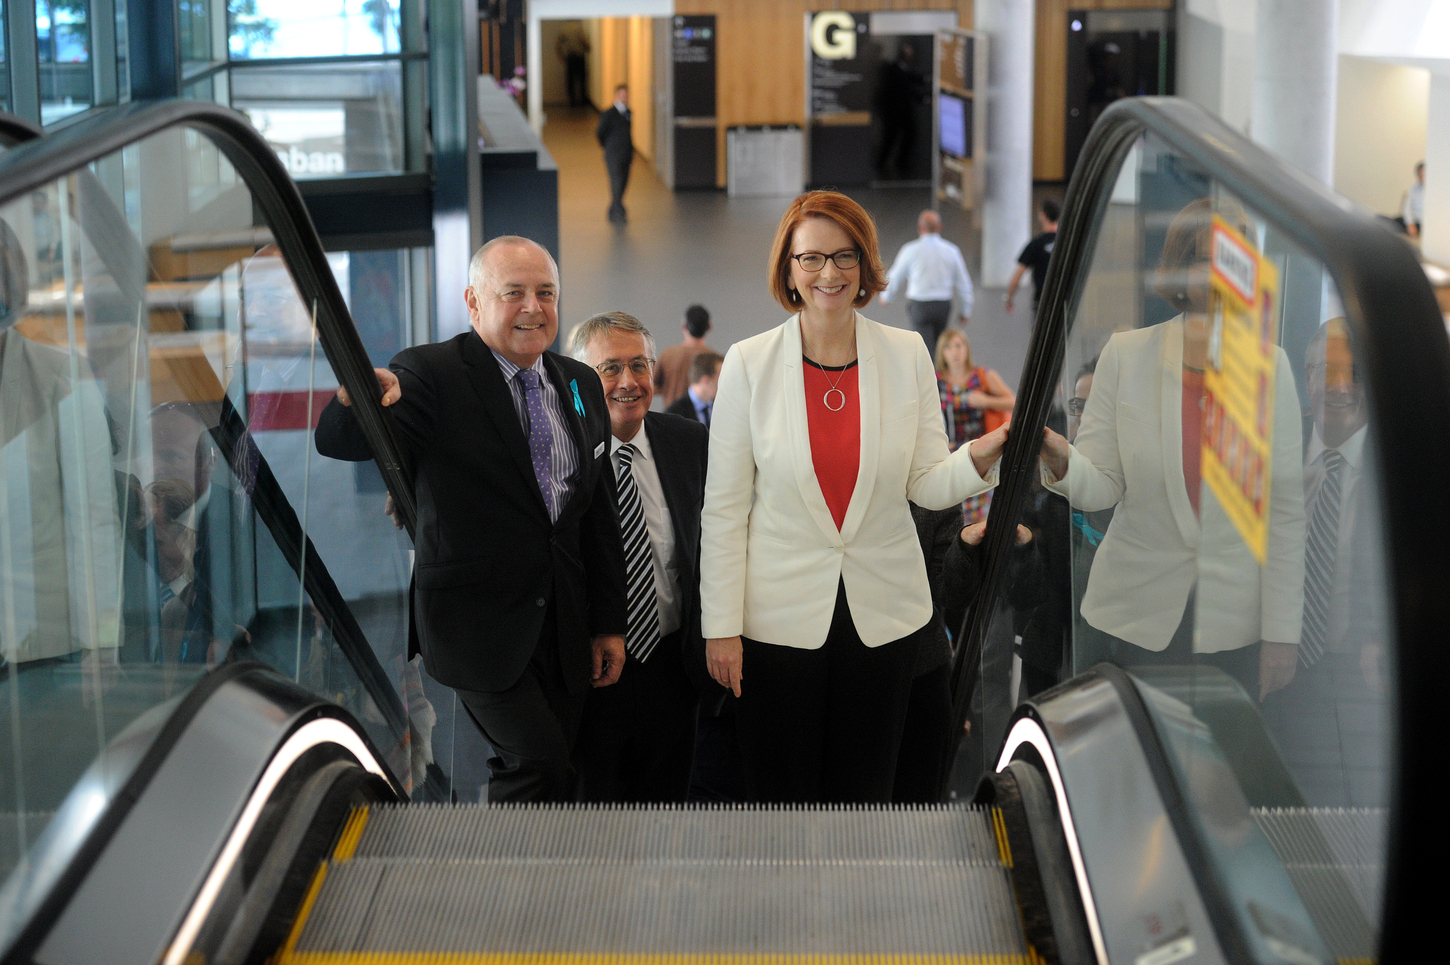 General manager Robert O'Keefe accompanies Julia Gillard and Wayne Swan during an inspection of the Convention Centre in Brisbane, the site of the 2014 G20 Summit. Image: AAP.